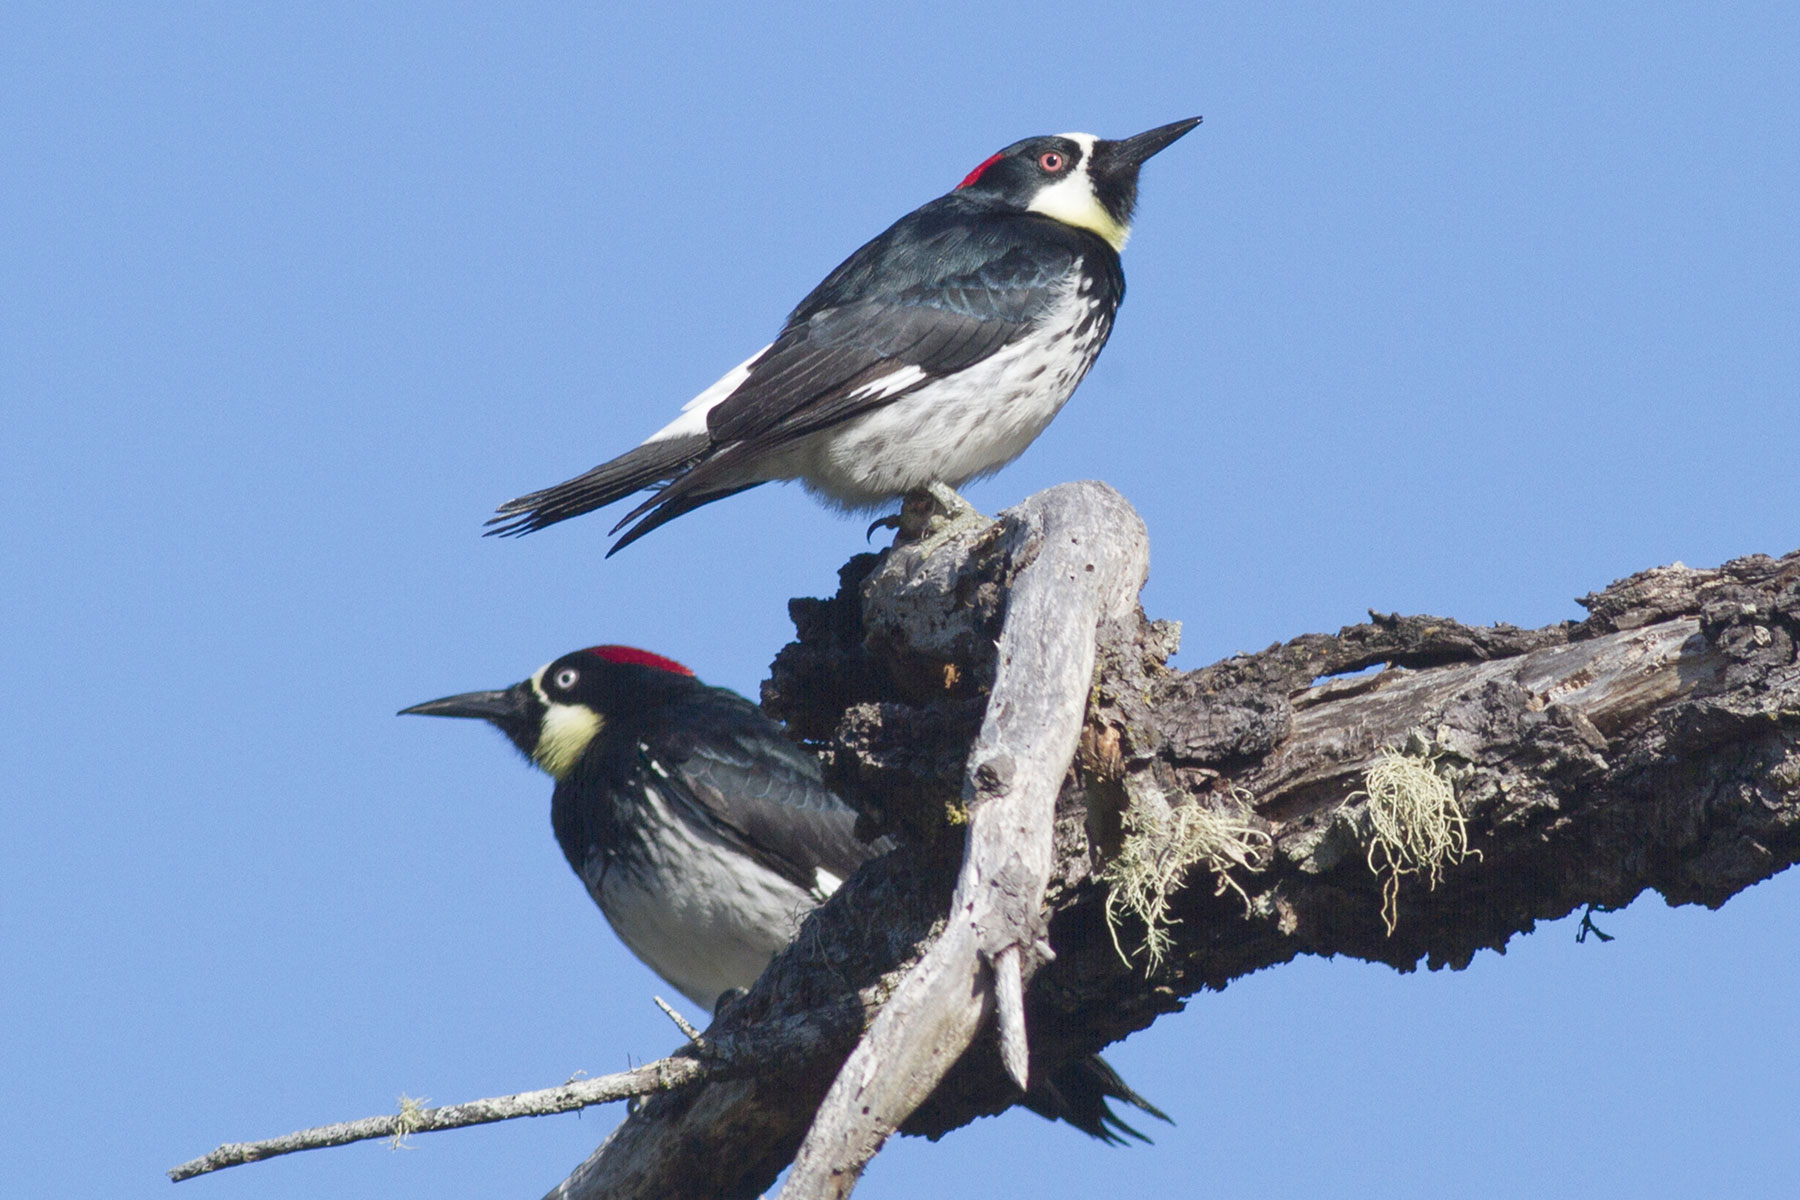 Two woodpeckers sit atop a bare branch with blue sky behind them.